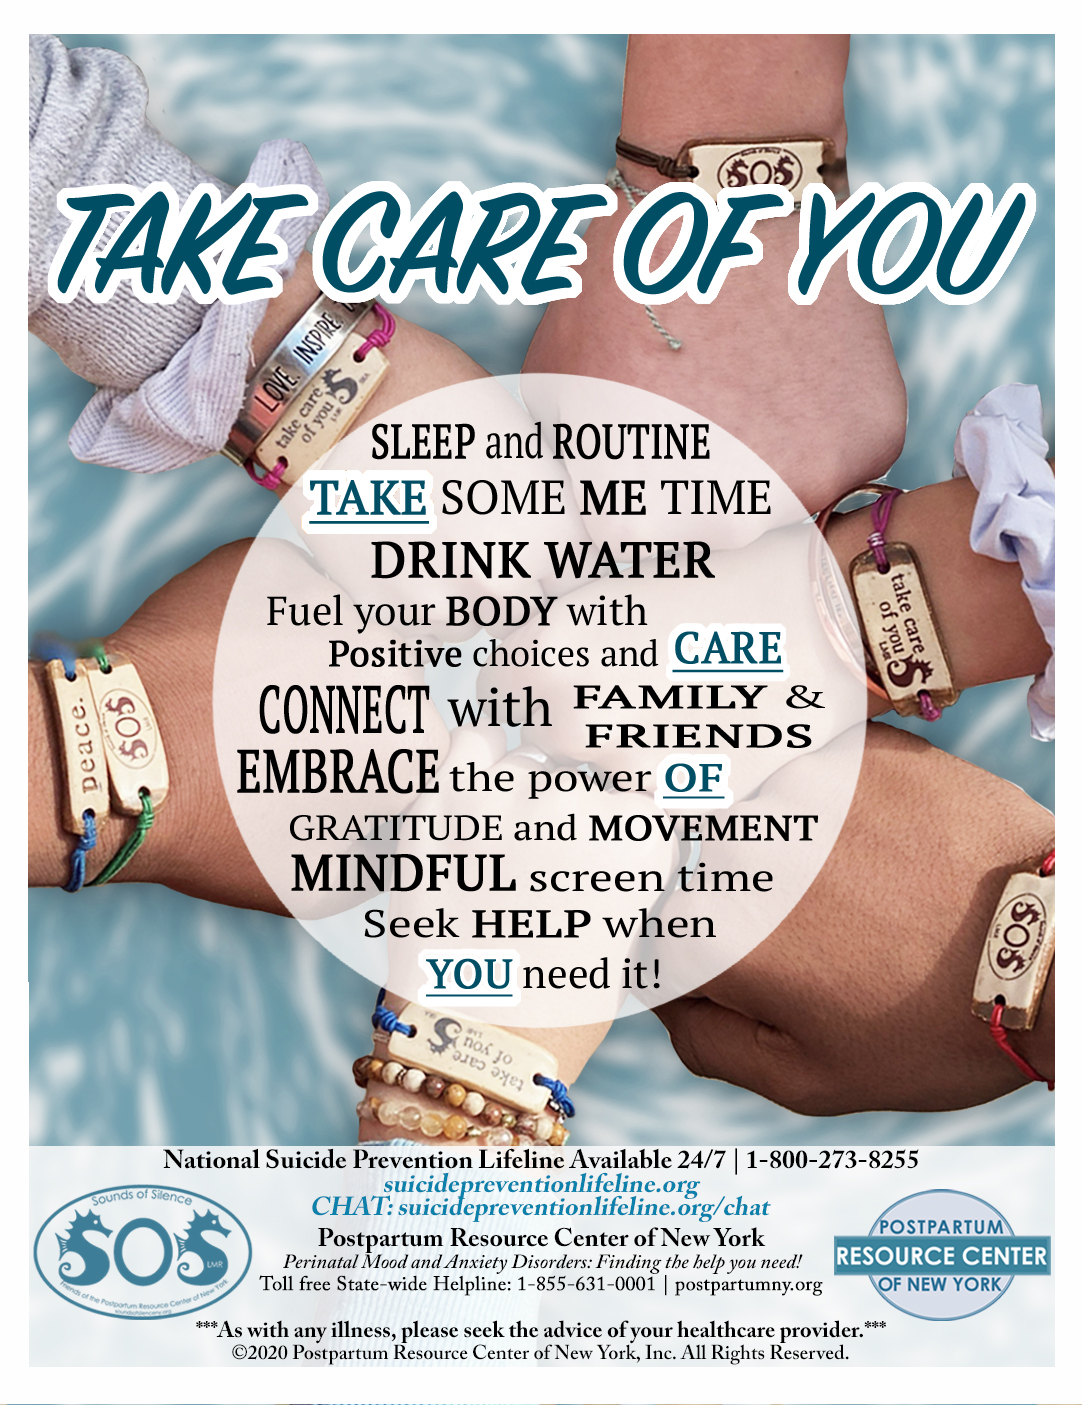 Take Care of You Initiative Flyer - March 2020